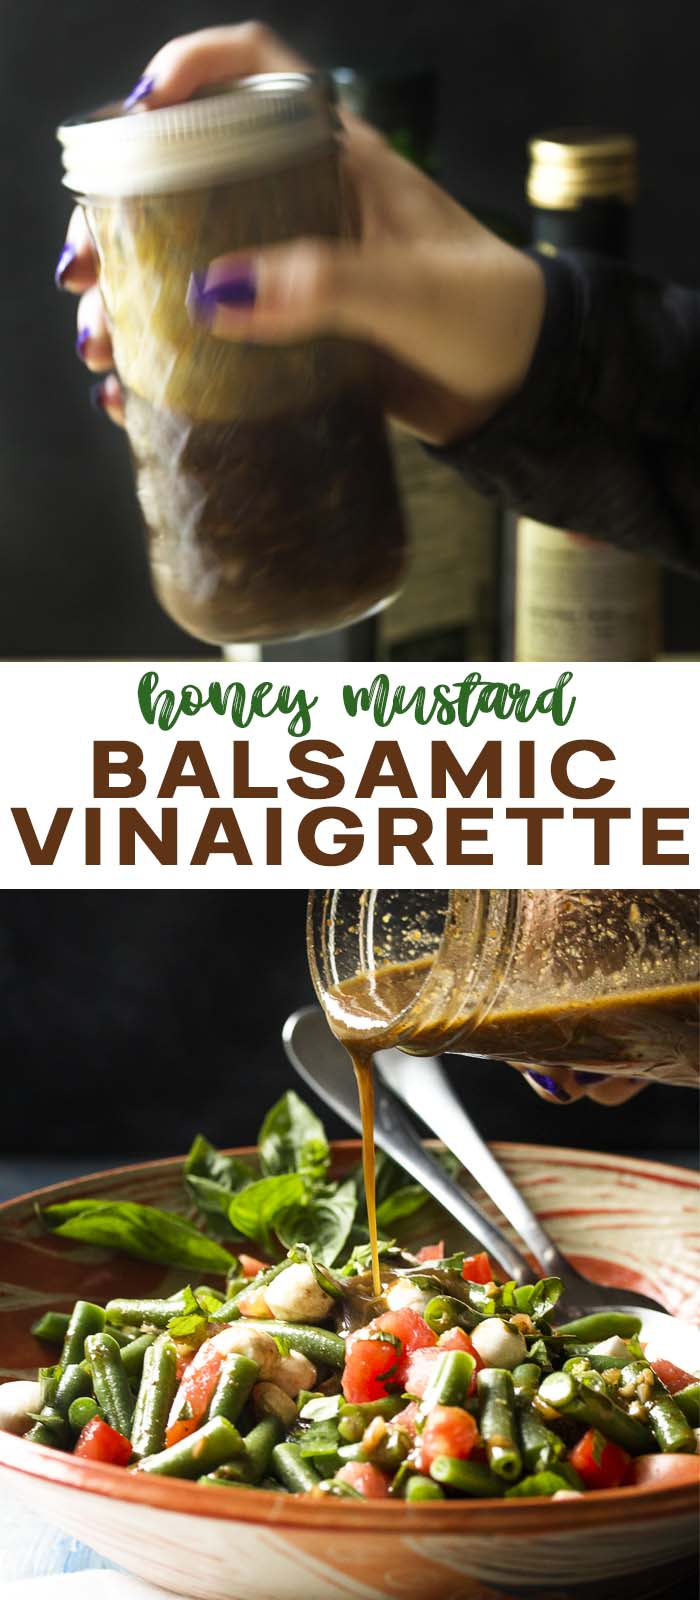 Dressing being shook and pouring on a salad with text overlay - Balsamic Vinaigrette.